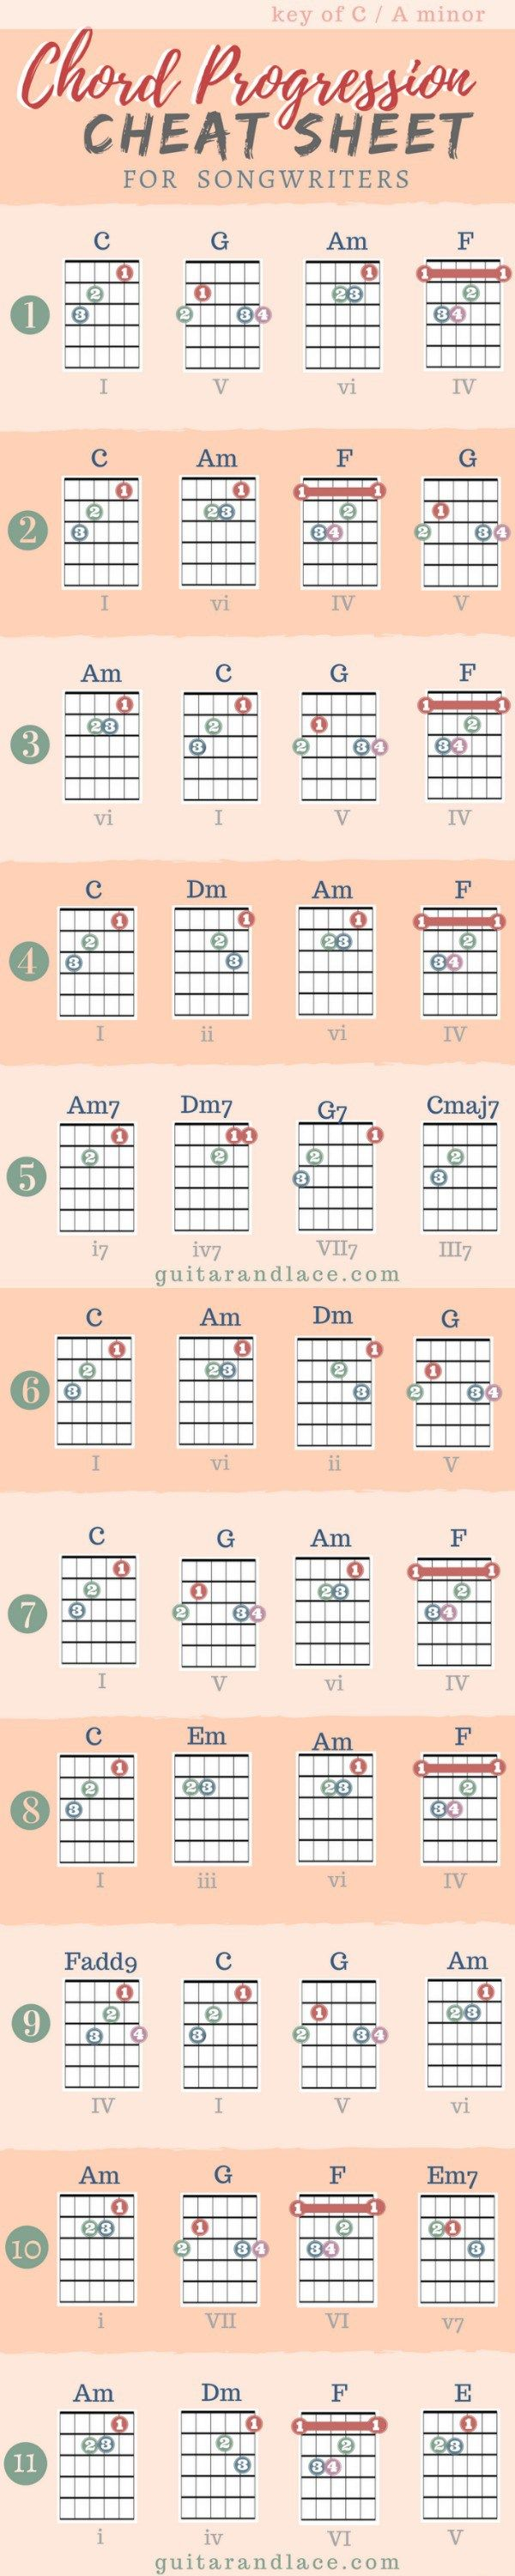 Free songwriting cheat sheets! guitar chord progressions, printables, lyric tips, guitar tips, songwriter tips!